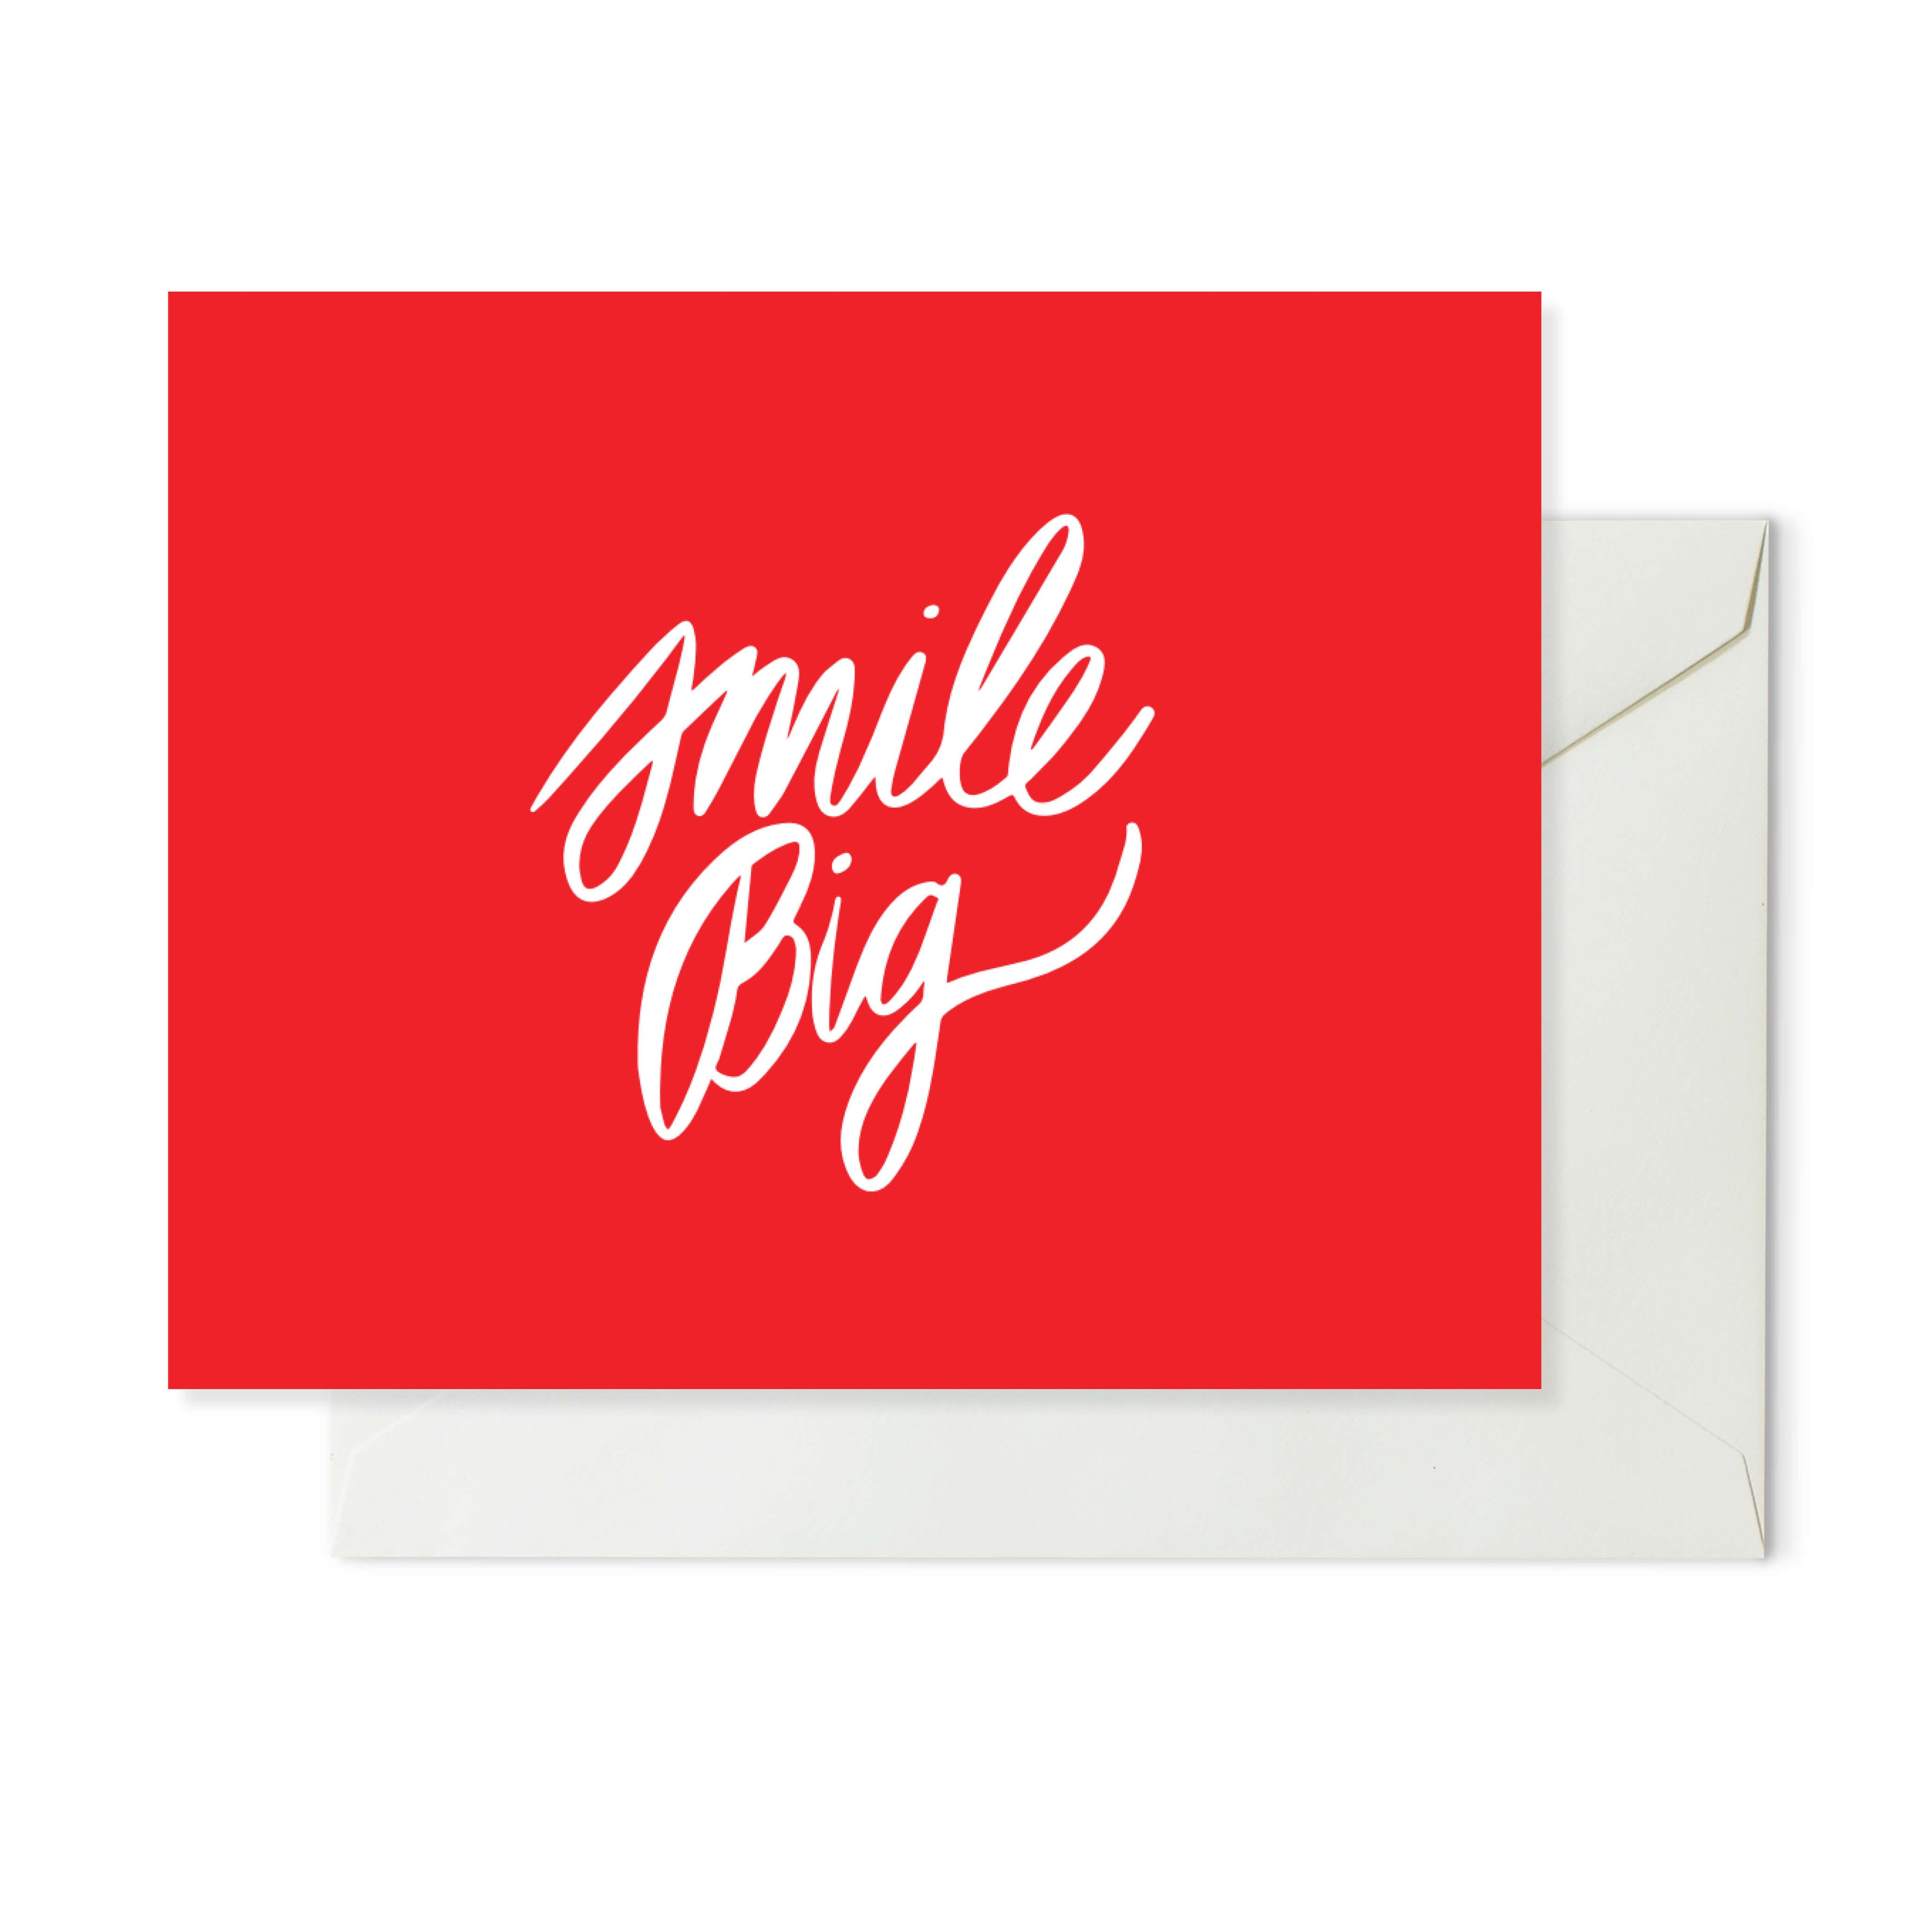 Moon and Lola xx Thimblepress - Smile Big Note Card w/envelope